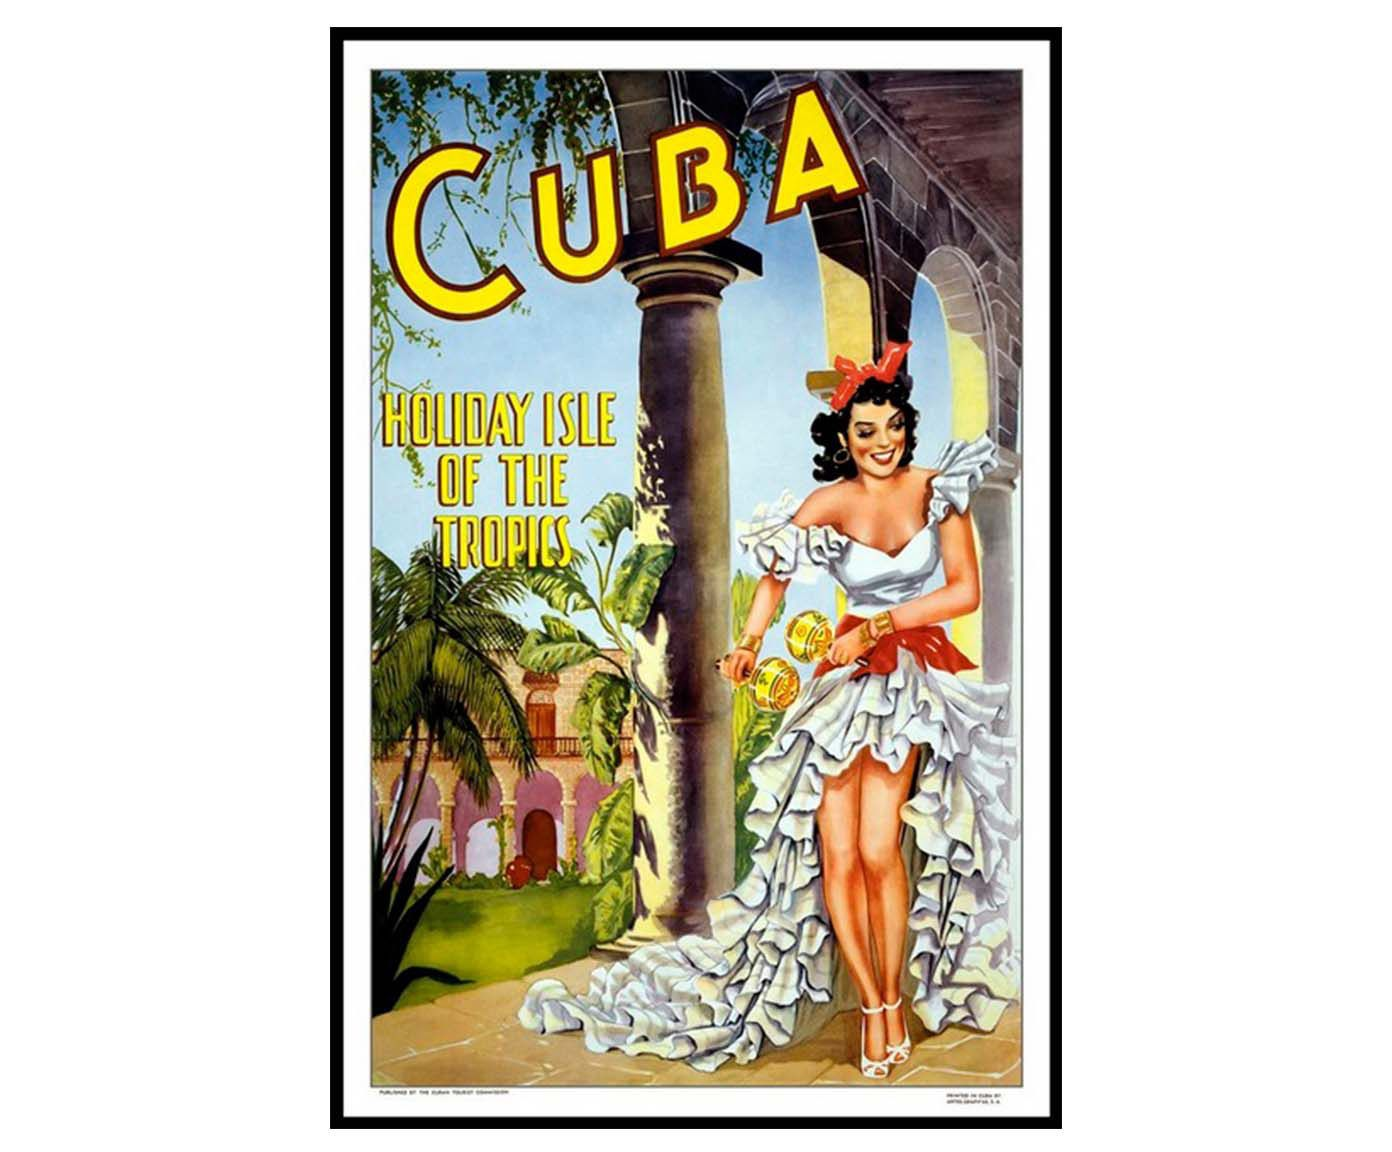 Gravura cuba holiday isle | Westwing.com.br